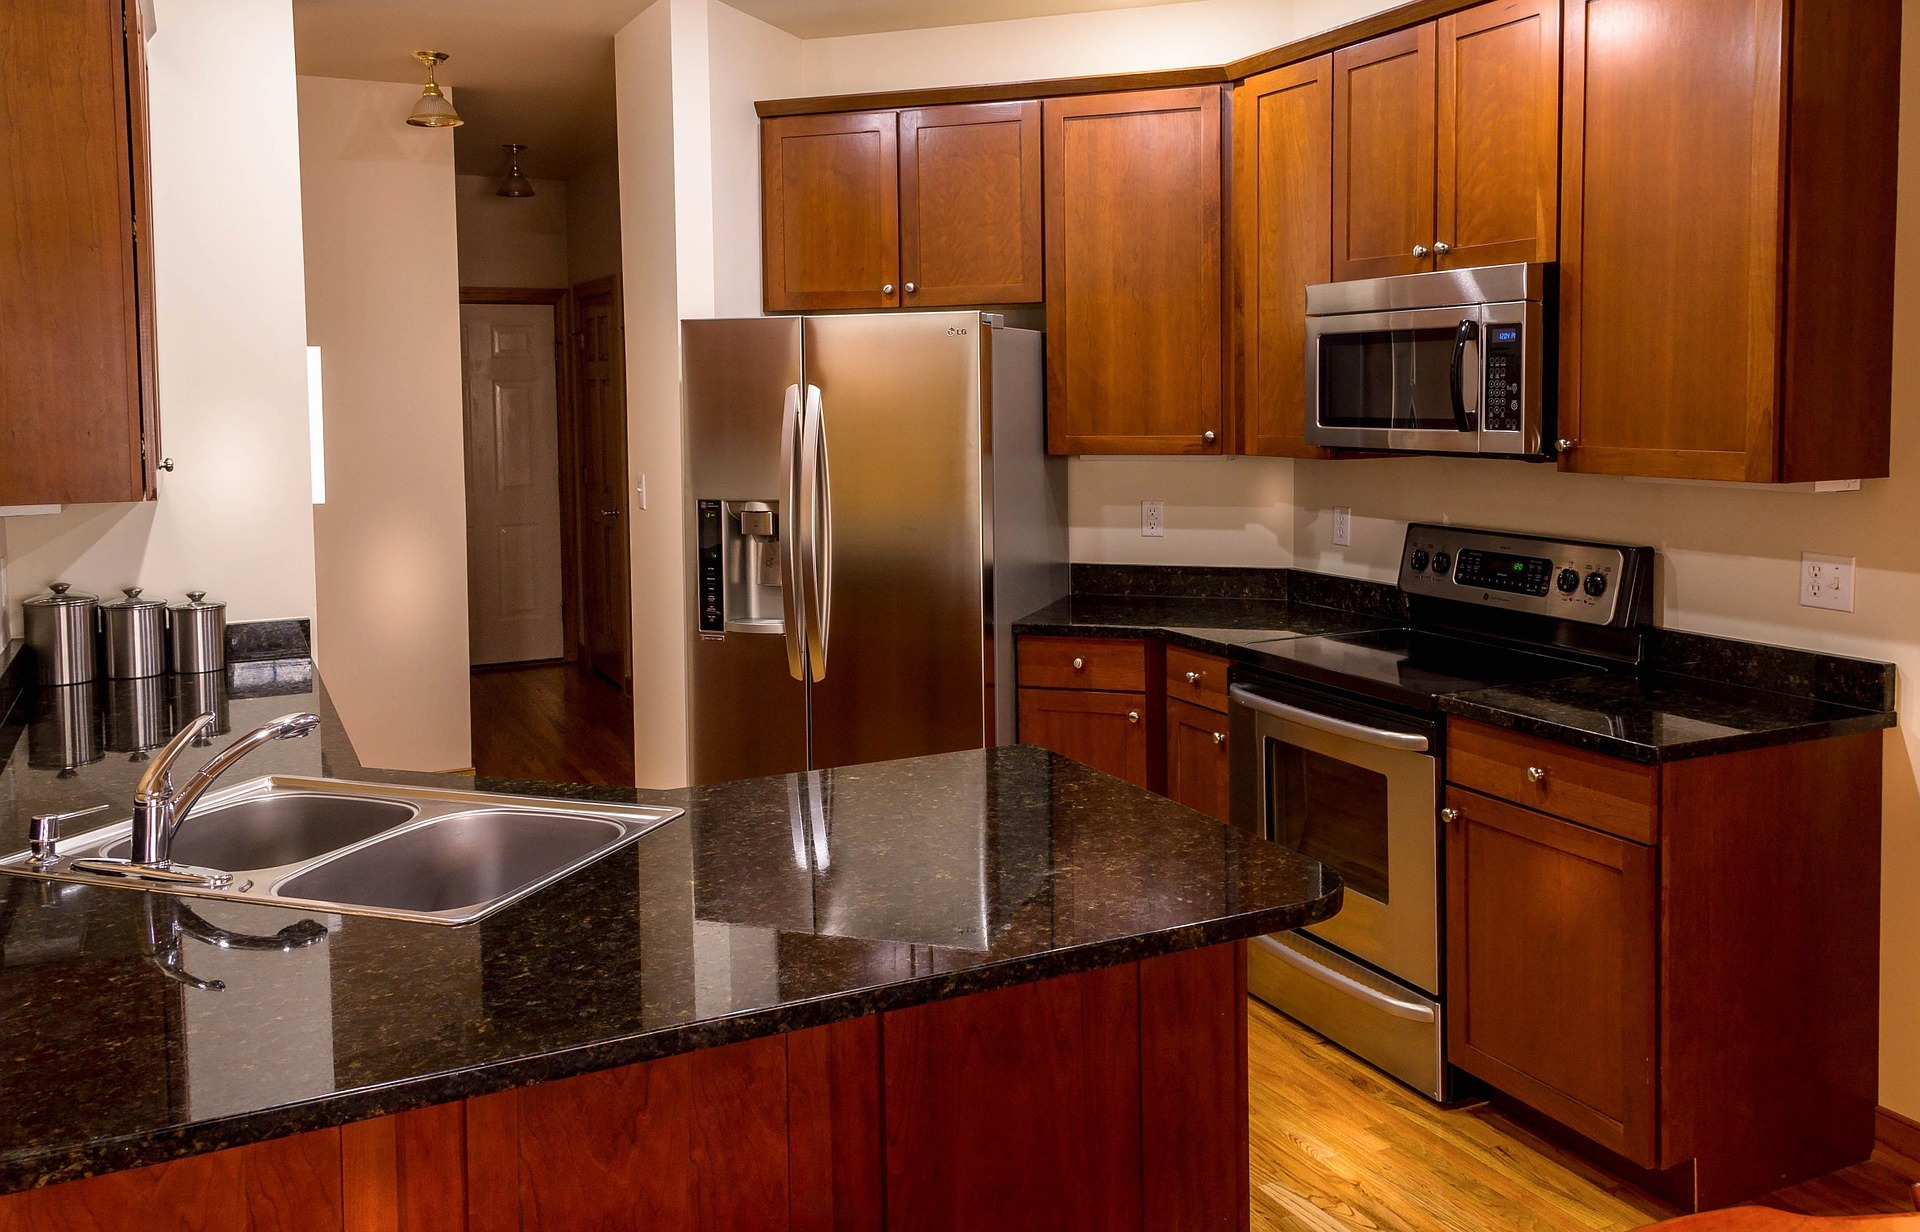 Kitchen small appliances victoria bc - Whether You Need Help With Kitchen Remodeling Or Light Plumbing No Job Is Too Big Or Too Small For